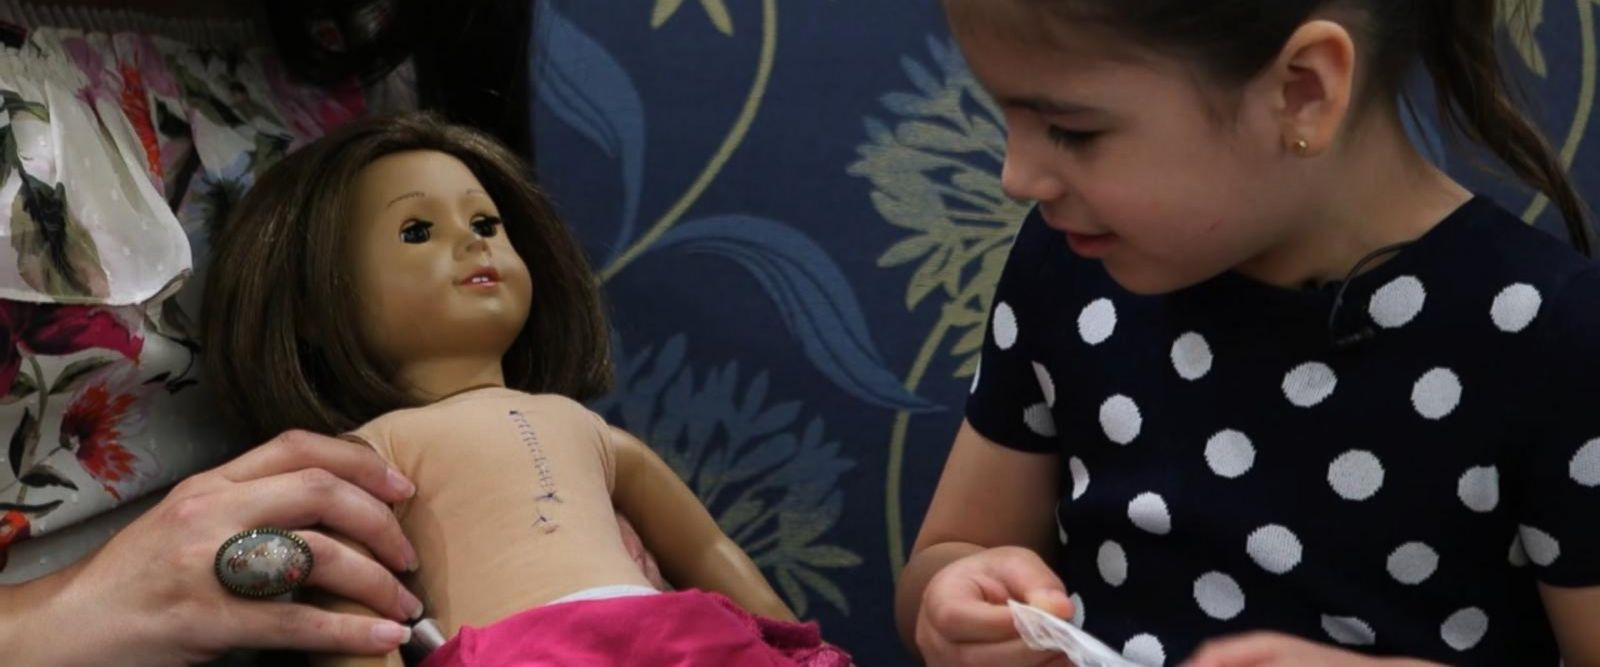 VIDEO: Little girl and her American Girl doll have matching surgery scars